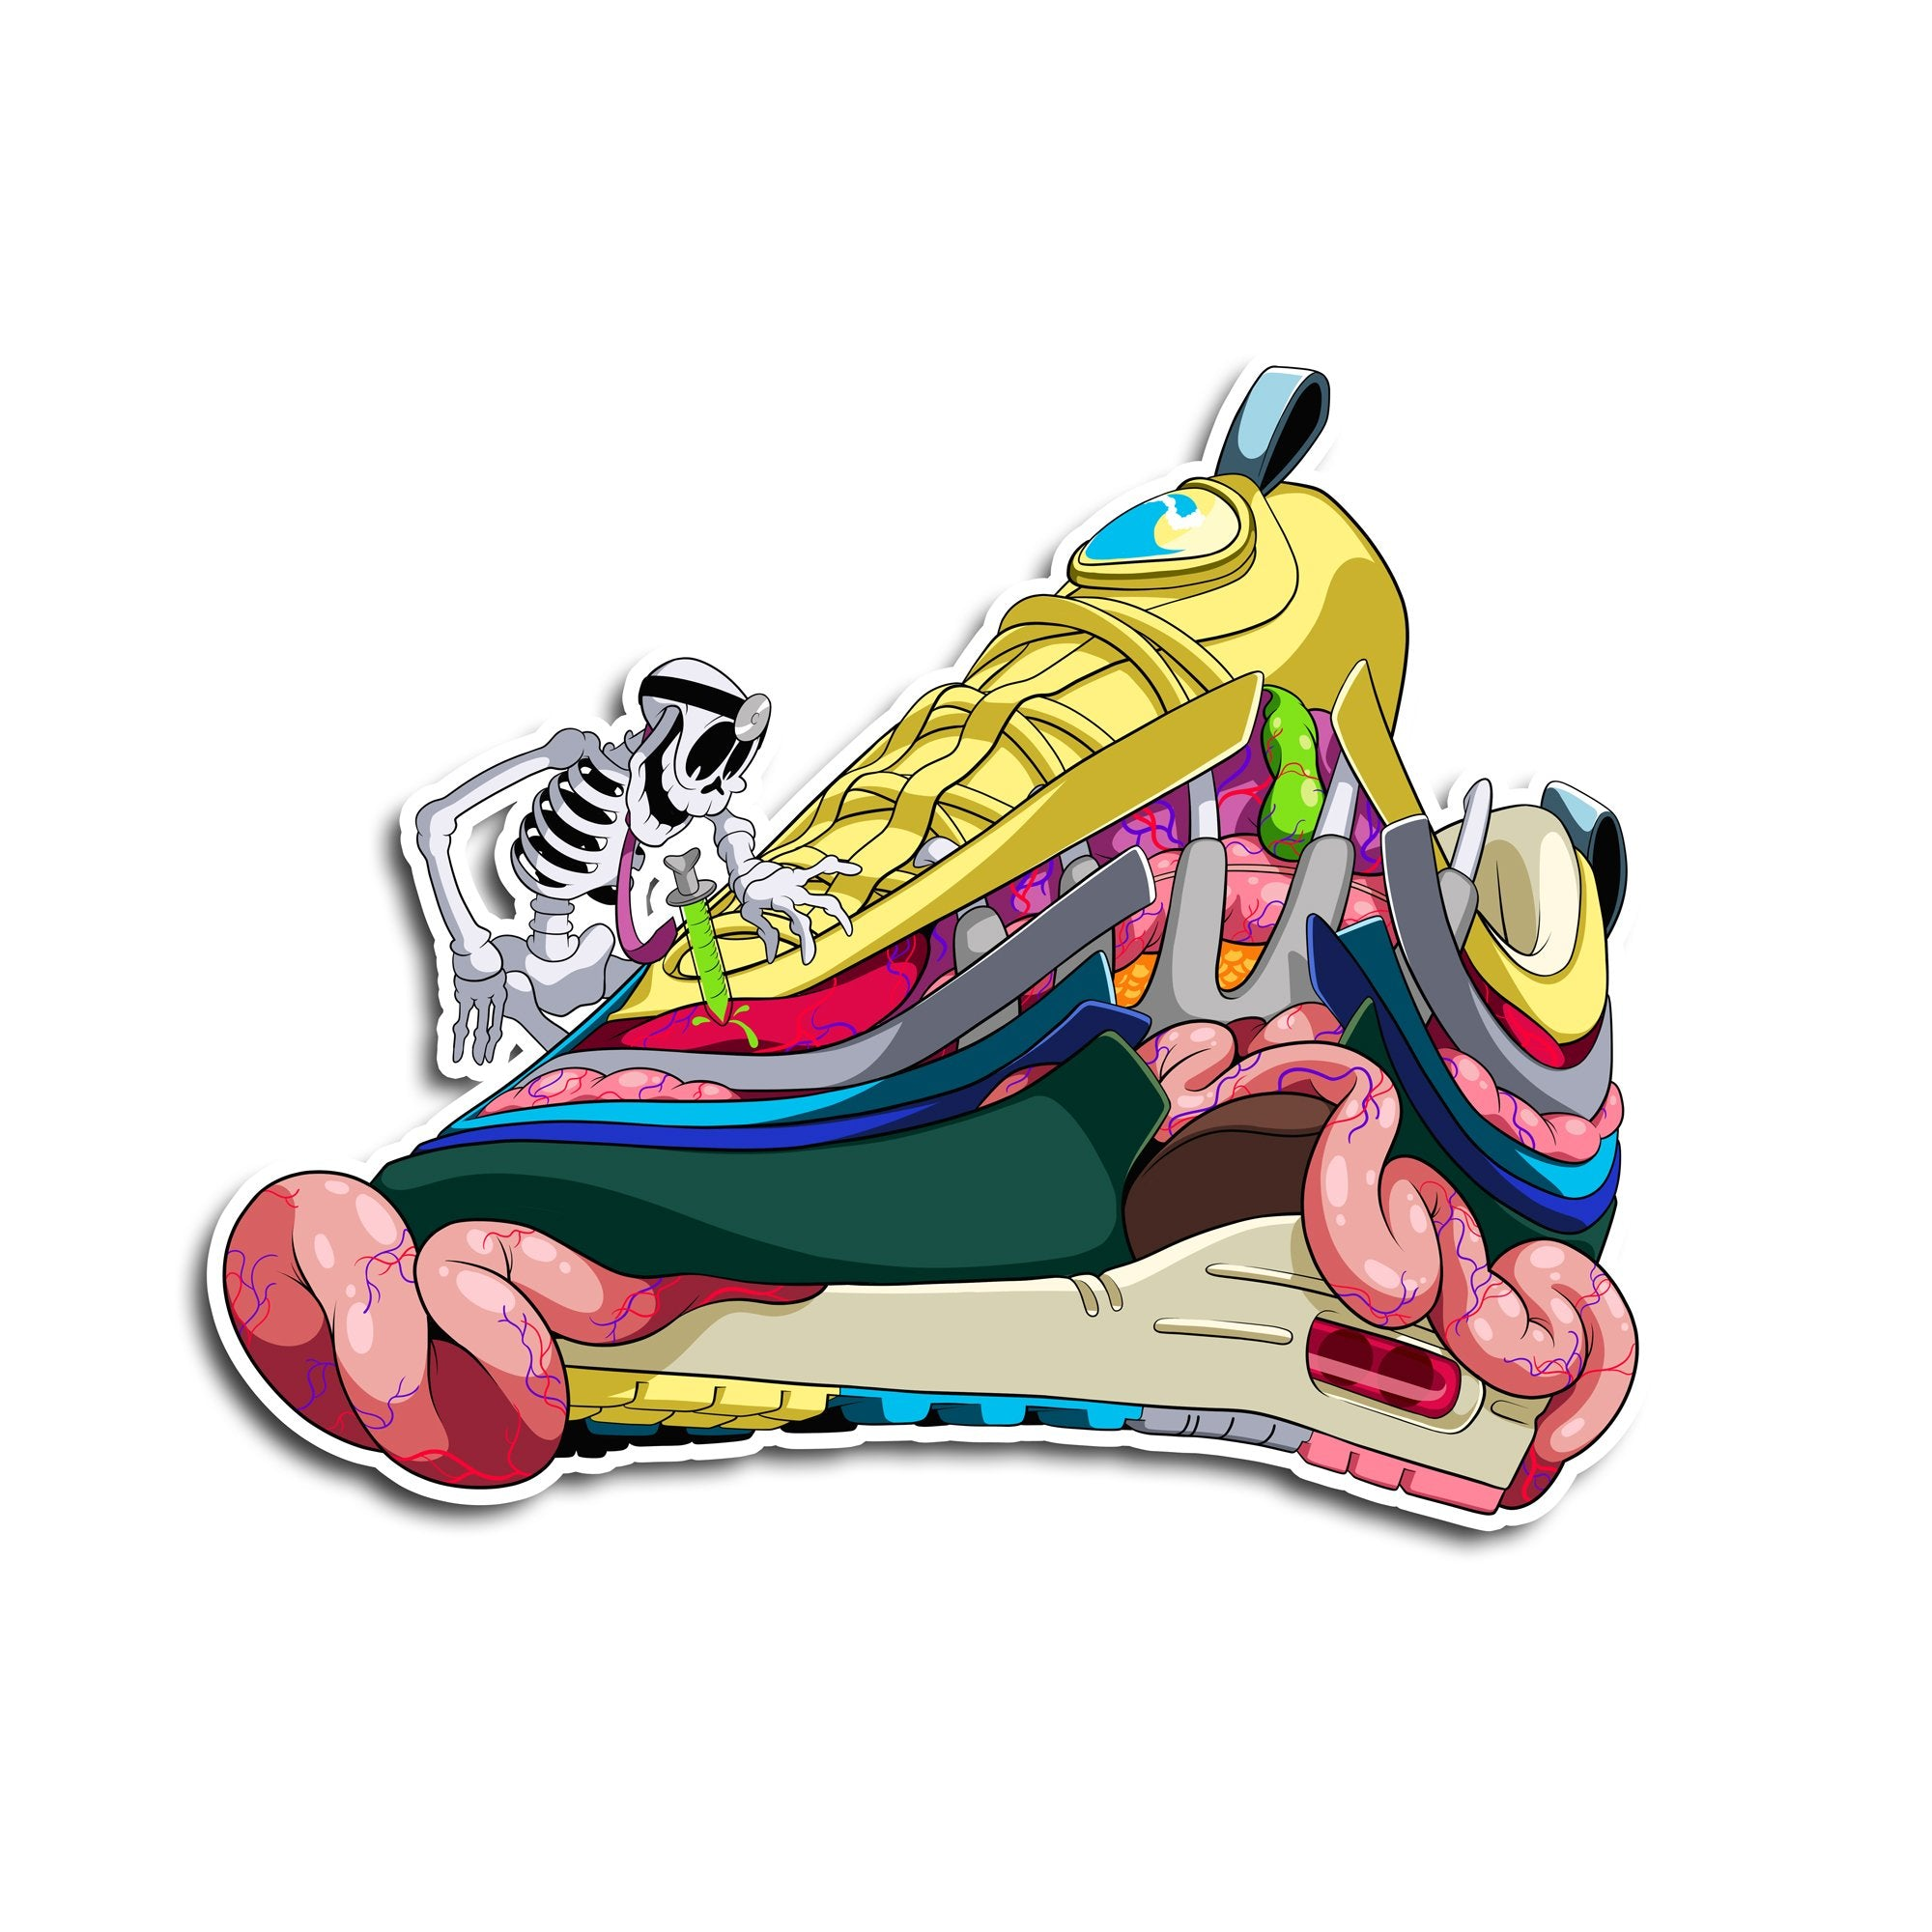 Sticker 197 Wotherspoon Wotherspoon Am Sean Sean qVUzpMS